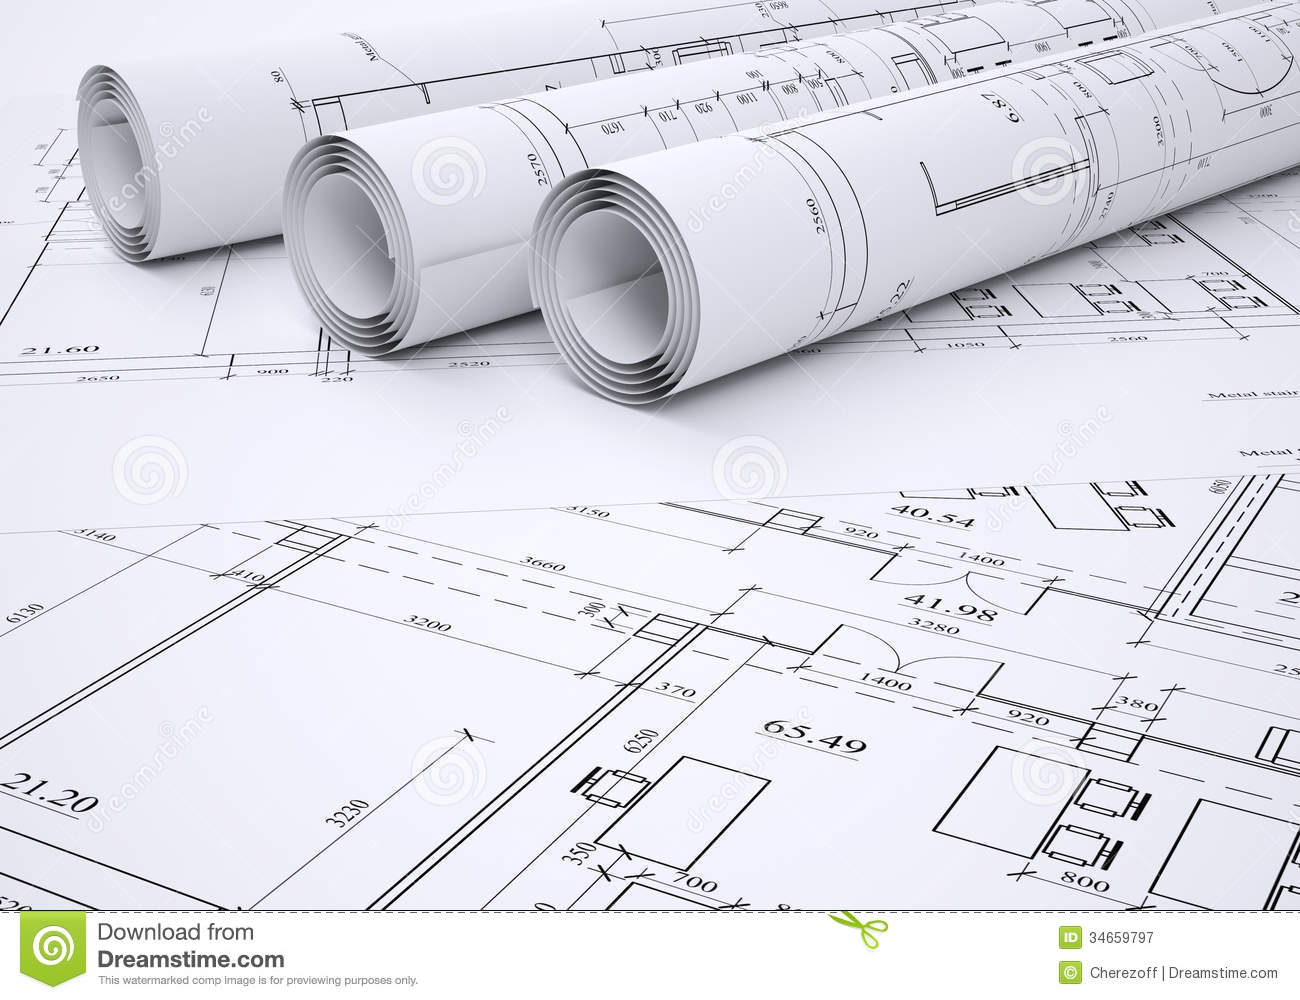 Architectural drawing rich image and wallpaper for Architecture blueprints